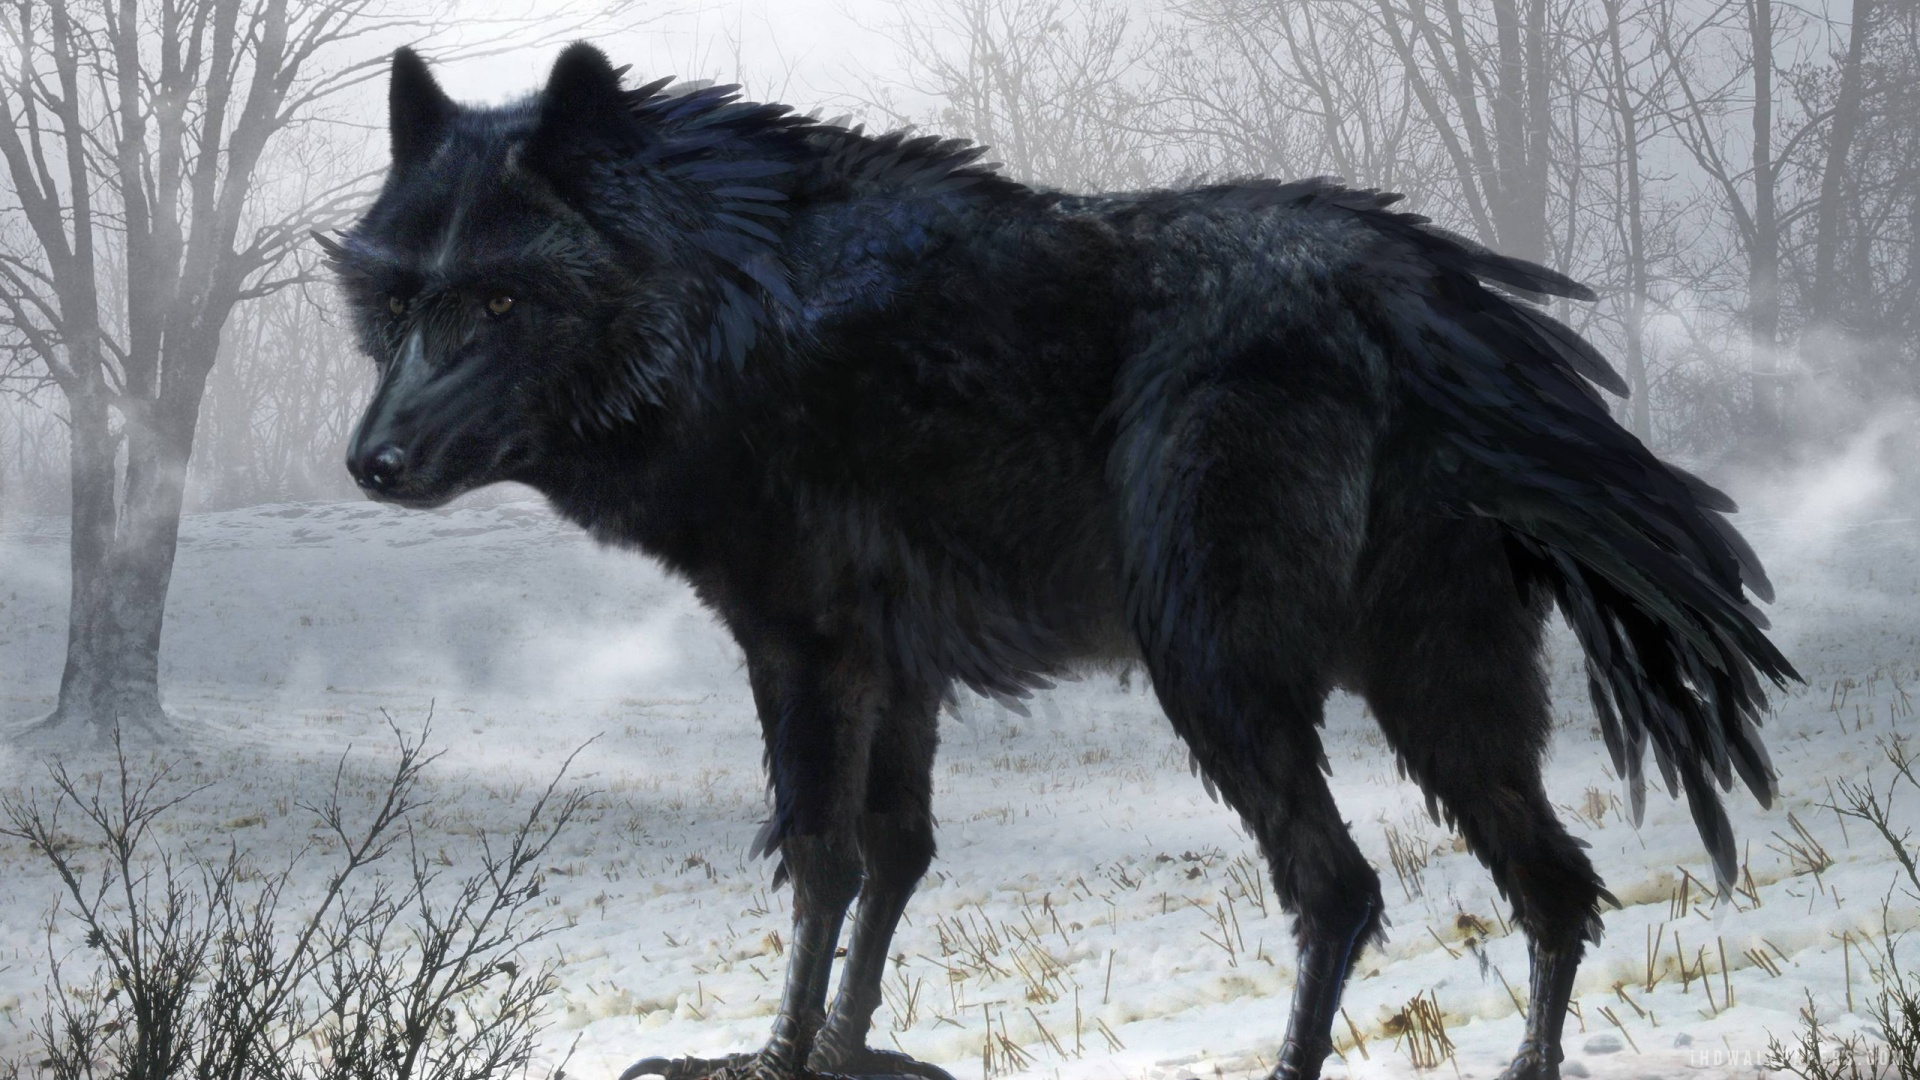 Black Wolf Wallpaper Black Wolf Wallpapers High Quality Download Free